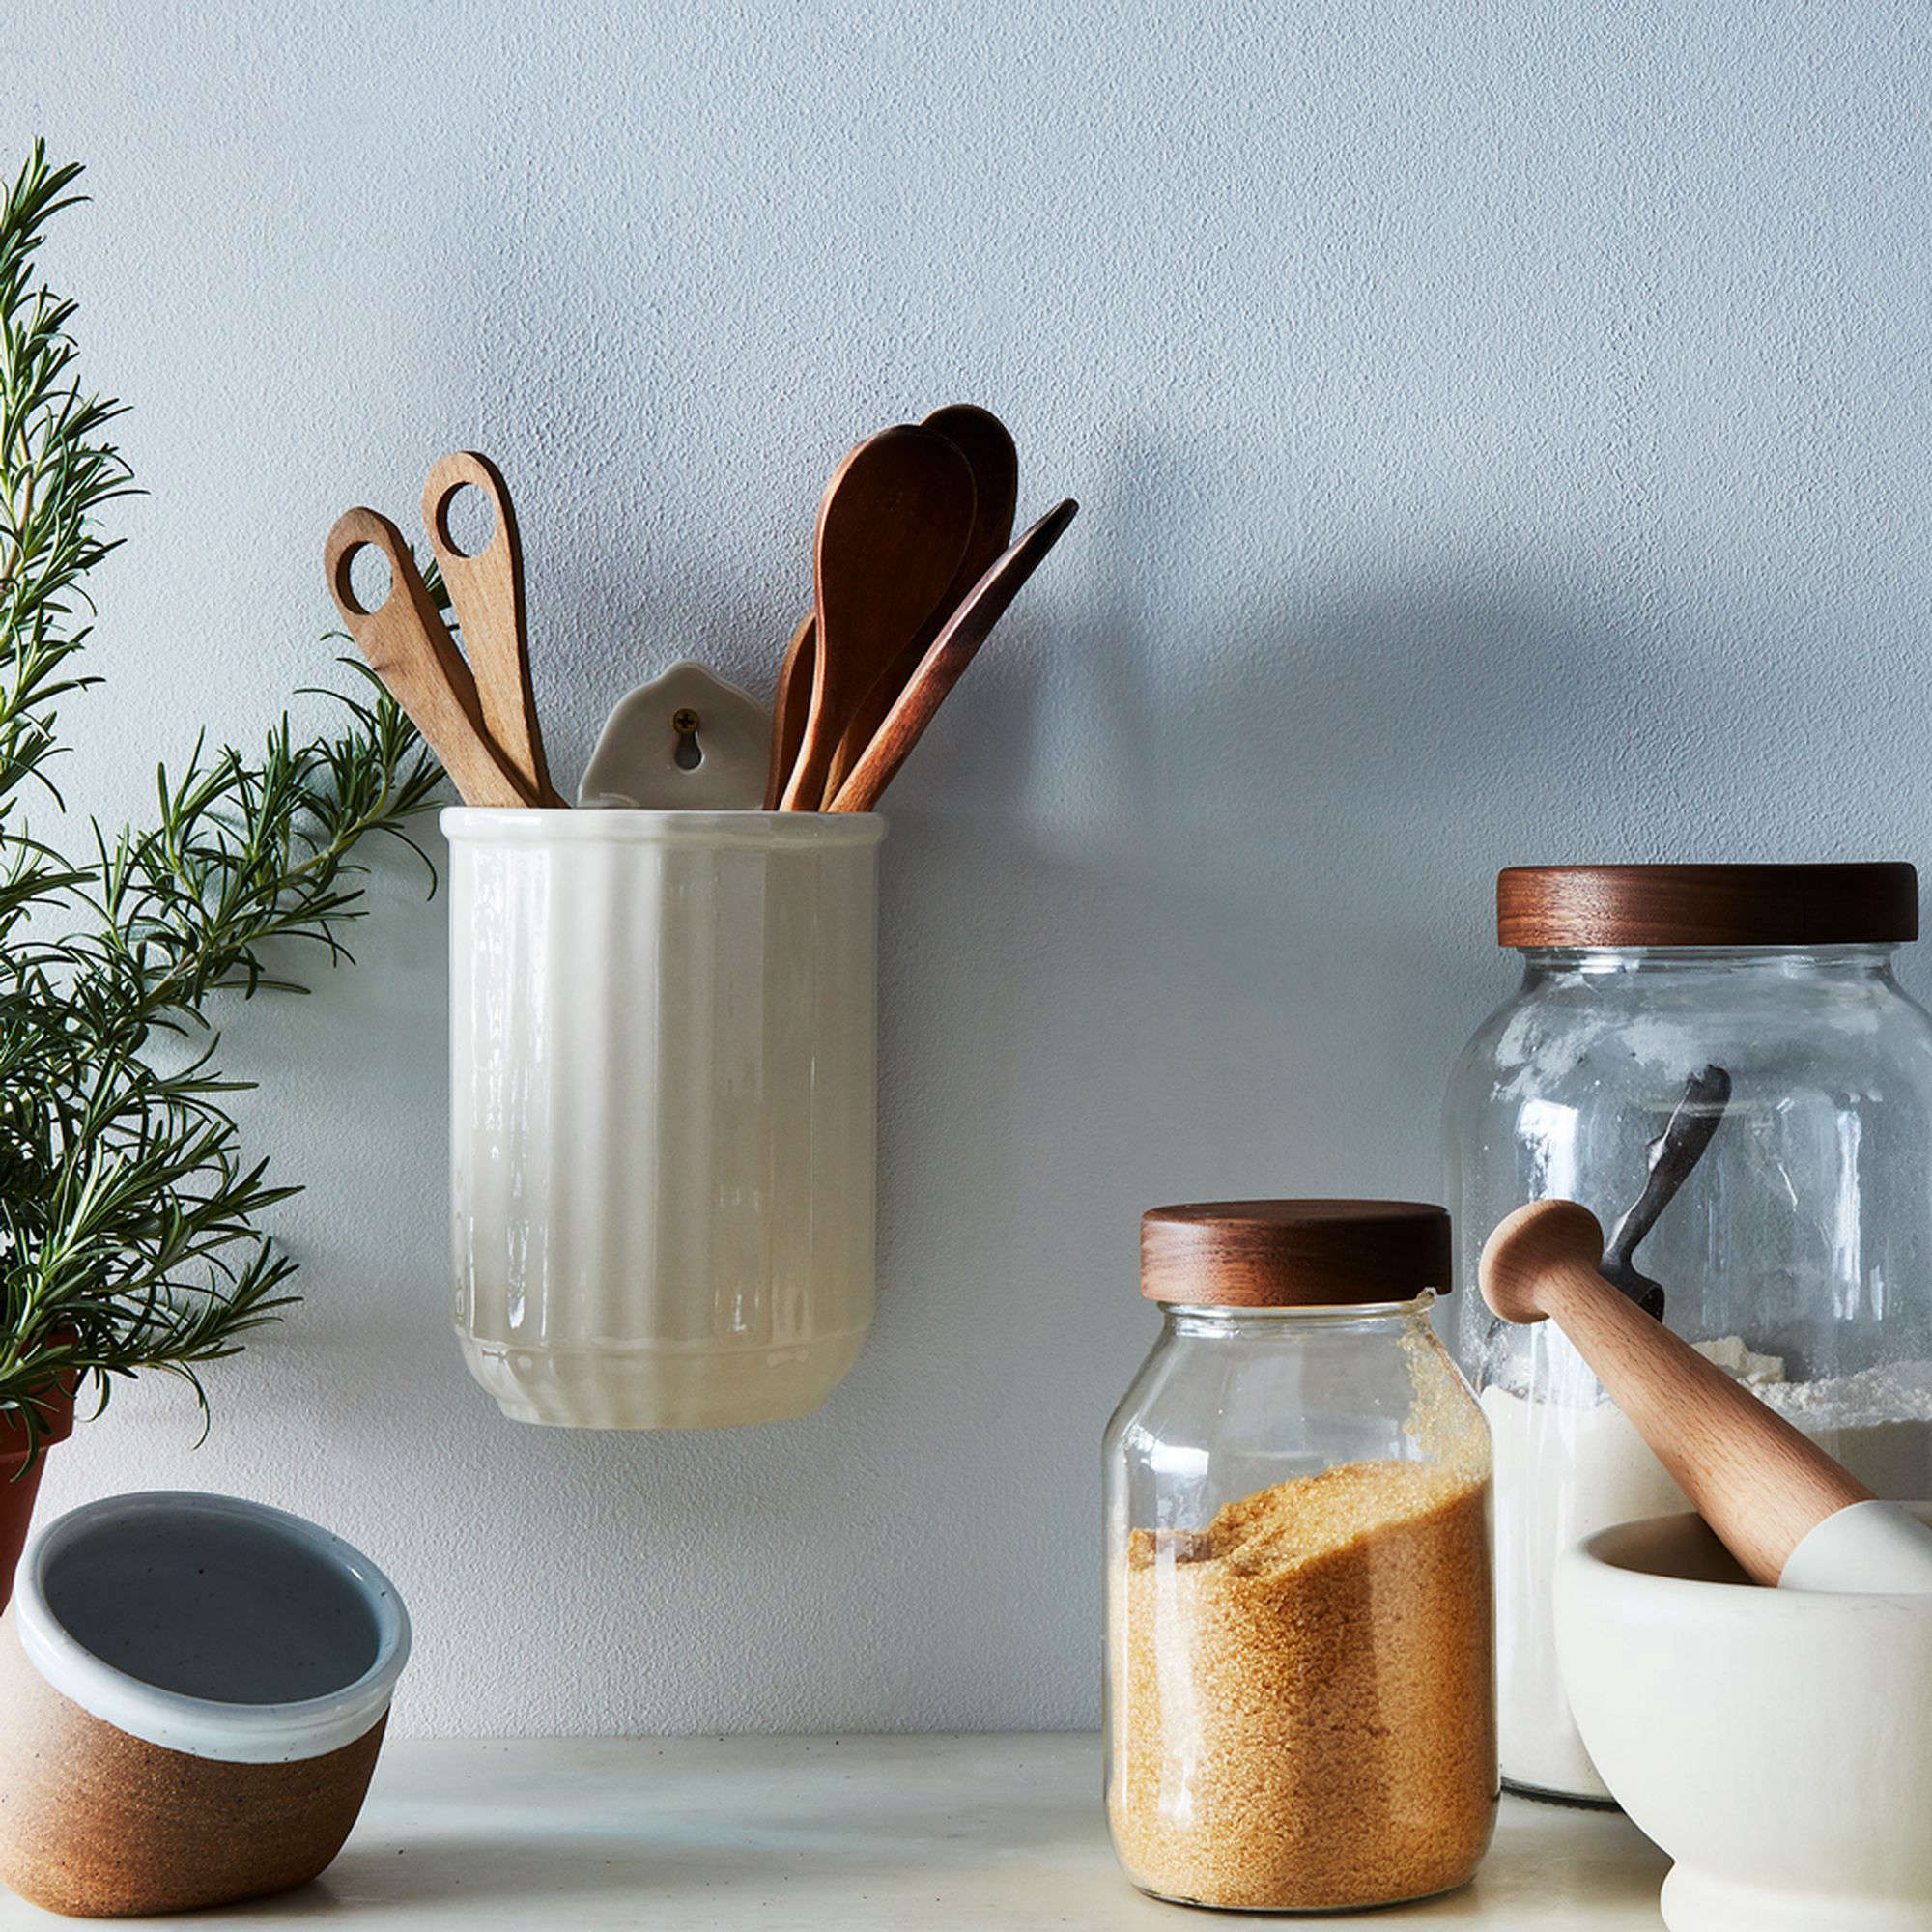 Sir/Madam Fluted Wall Utensil Crock at Food52